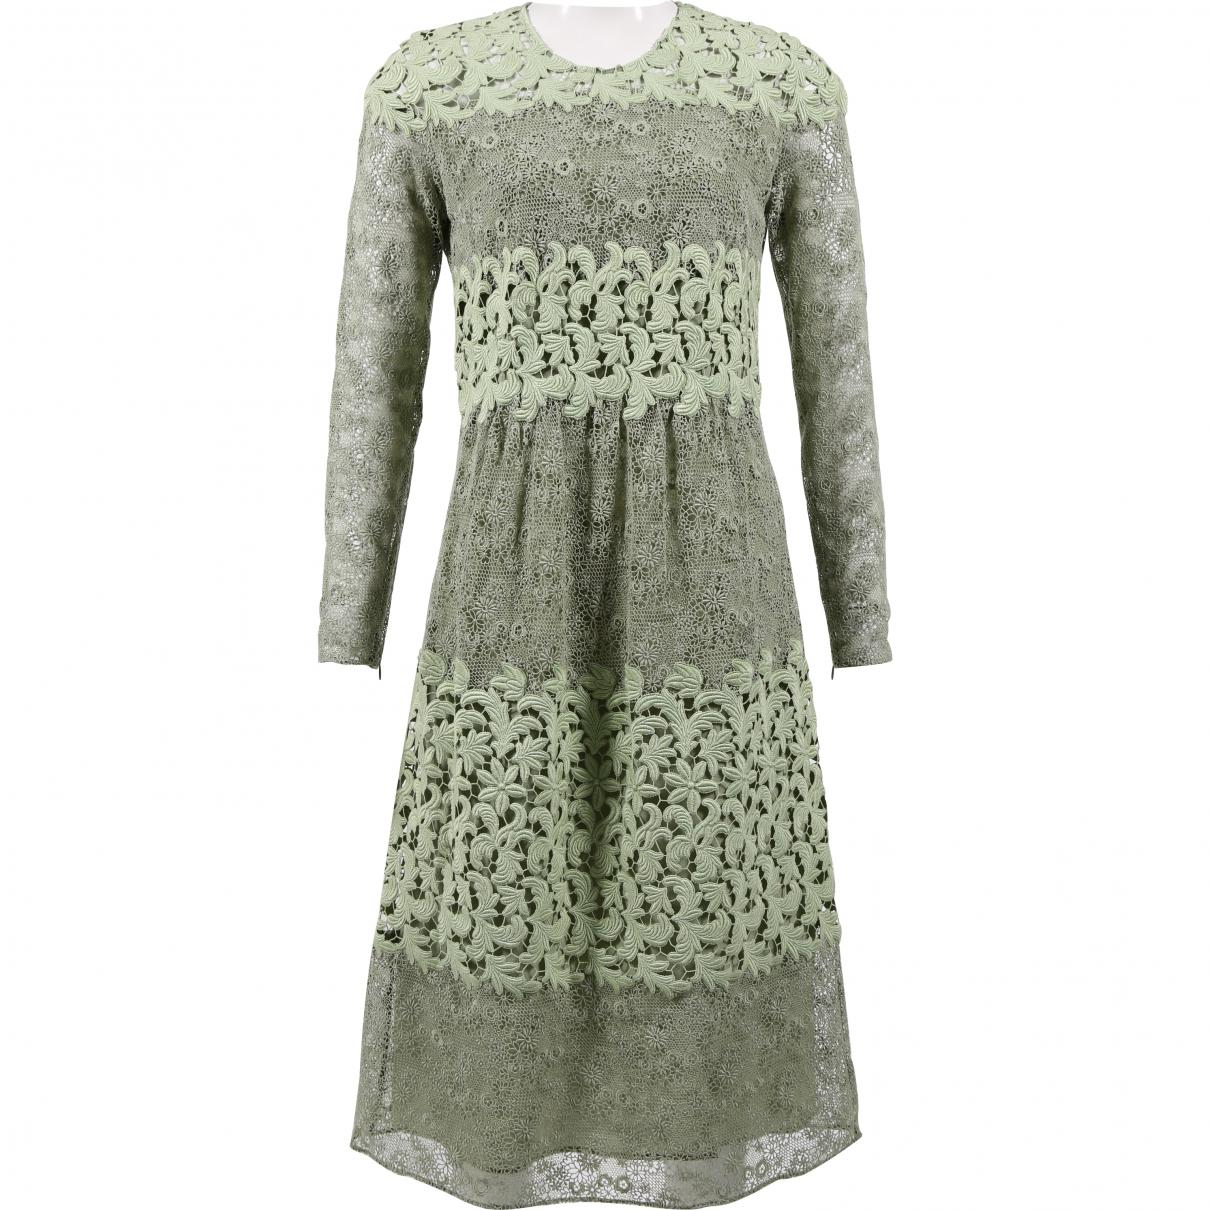 f451f2f1eef7 Lyst - Burberry Pre-owned Mid-length Dress in Green